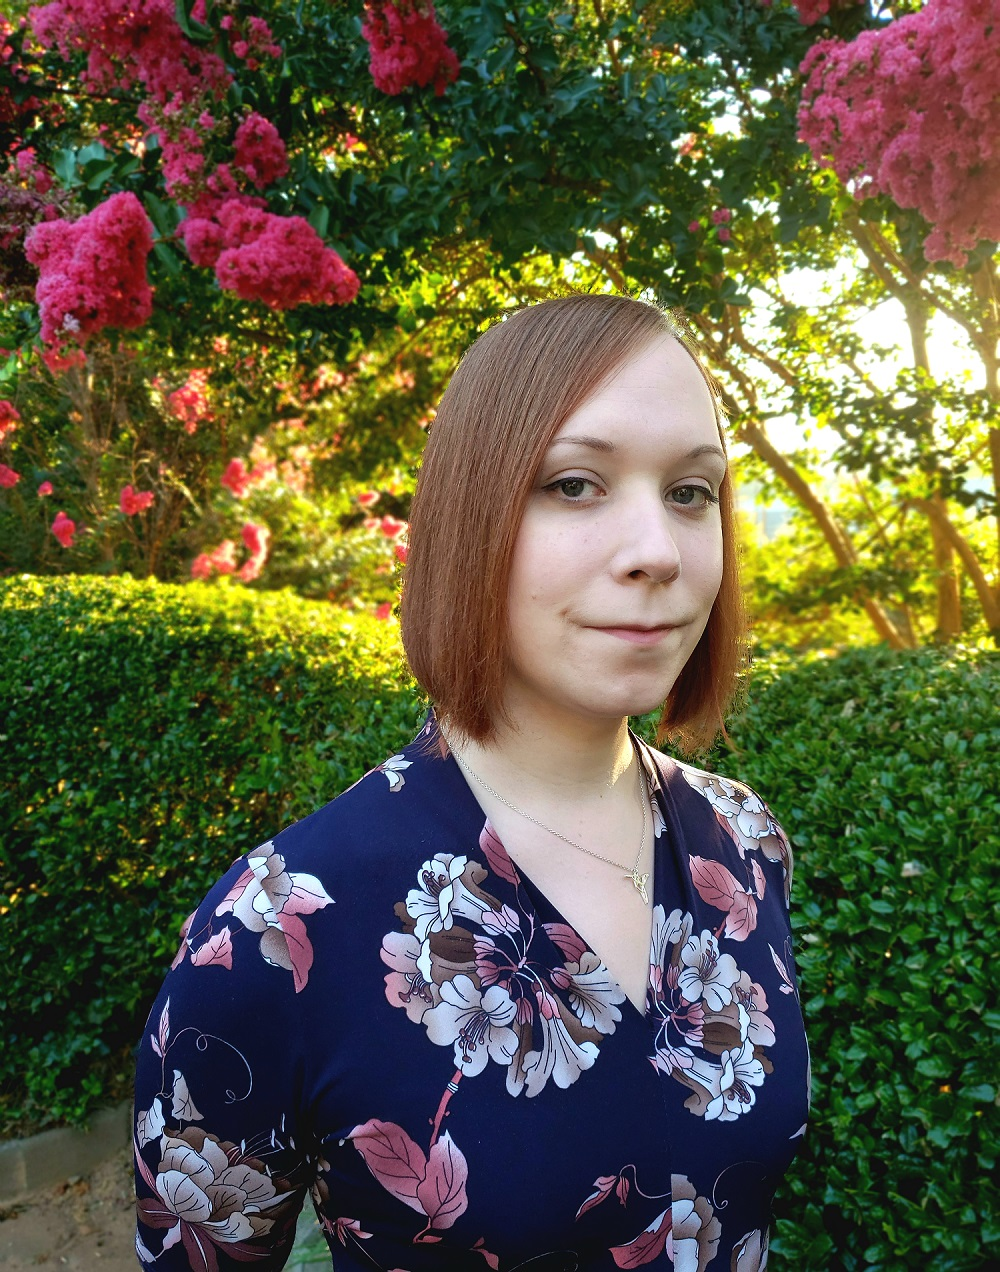 Headshot of Anna Woten standing outside in front of a flowering tree.